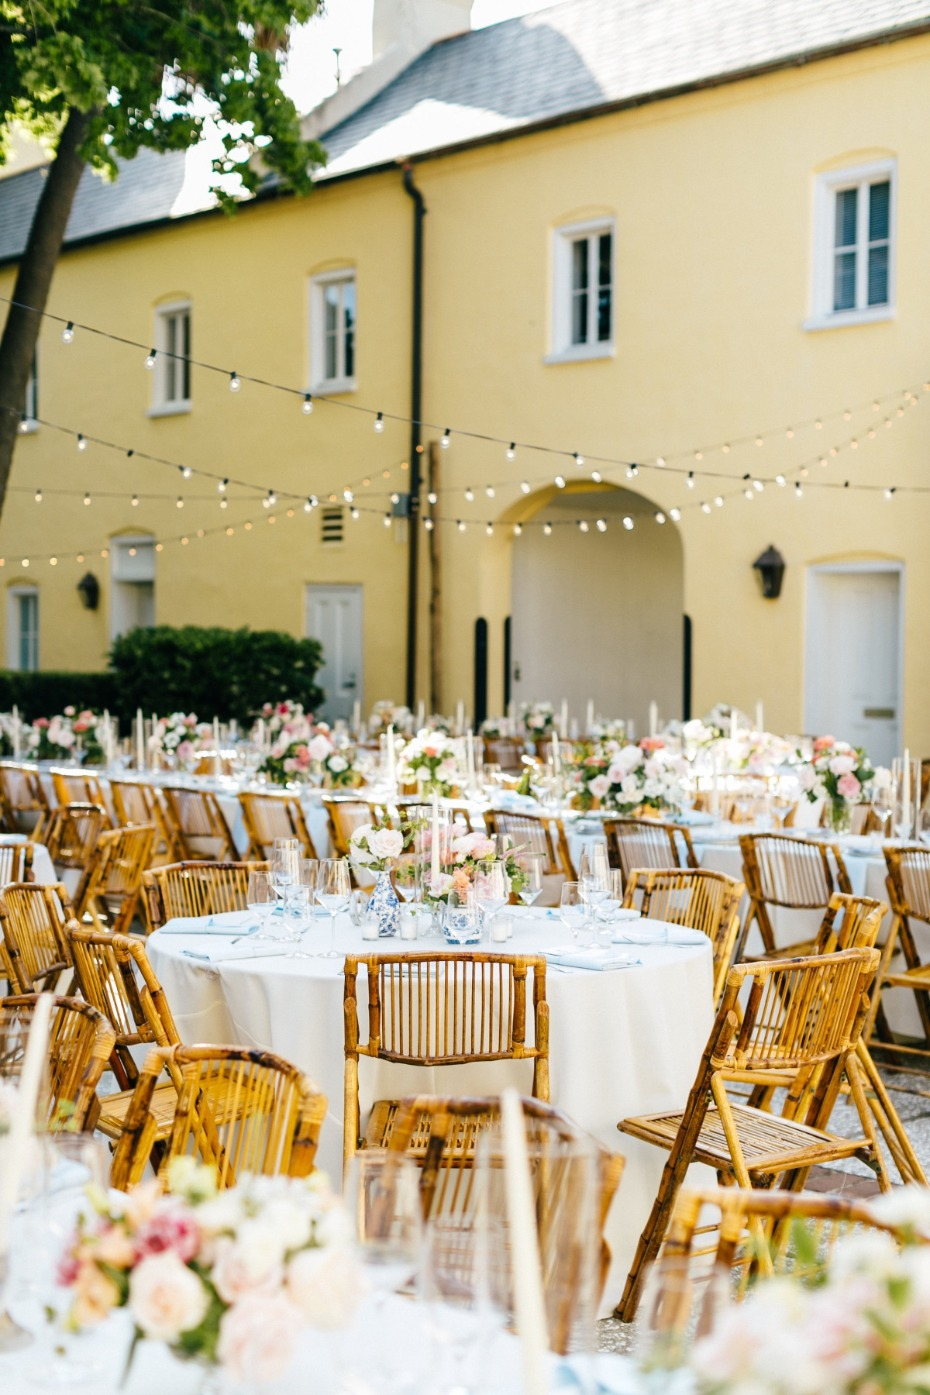 Chic outdoor reception with bistro lights